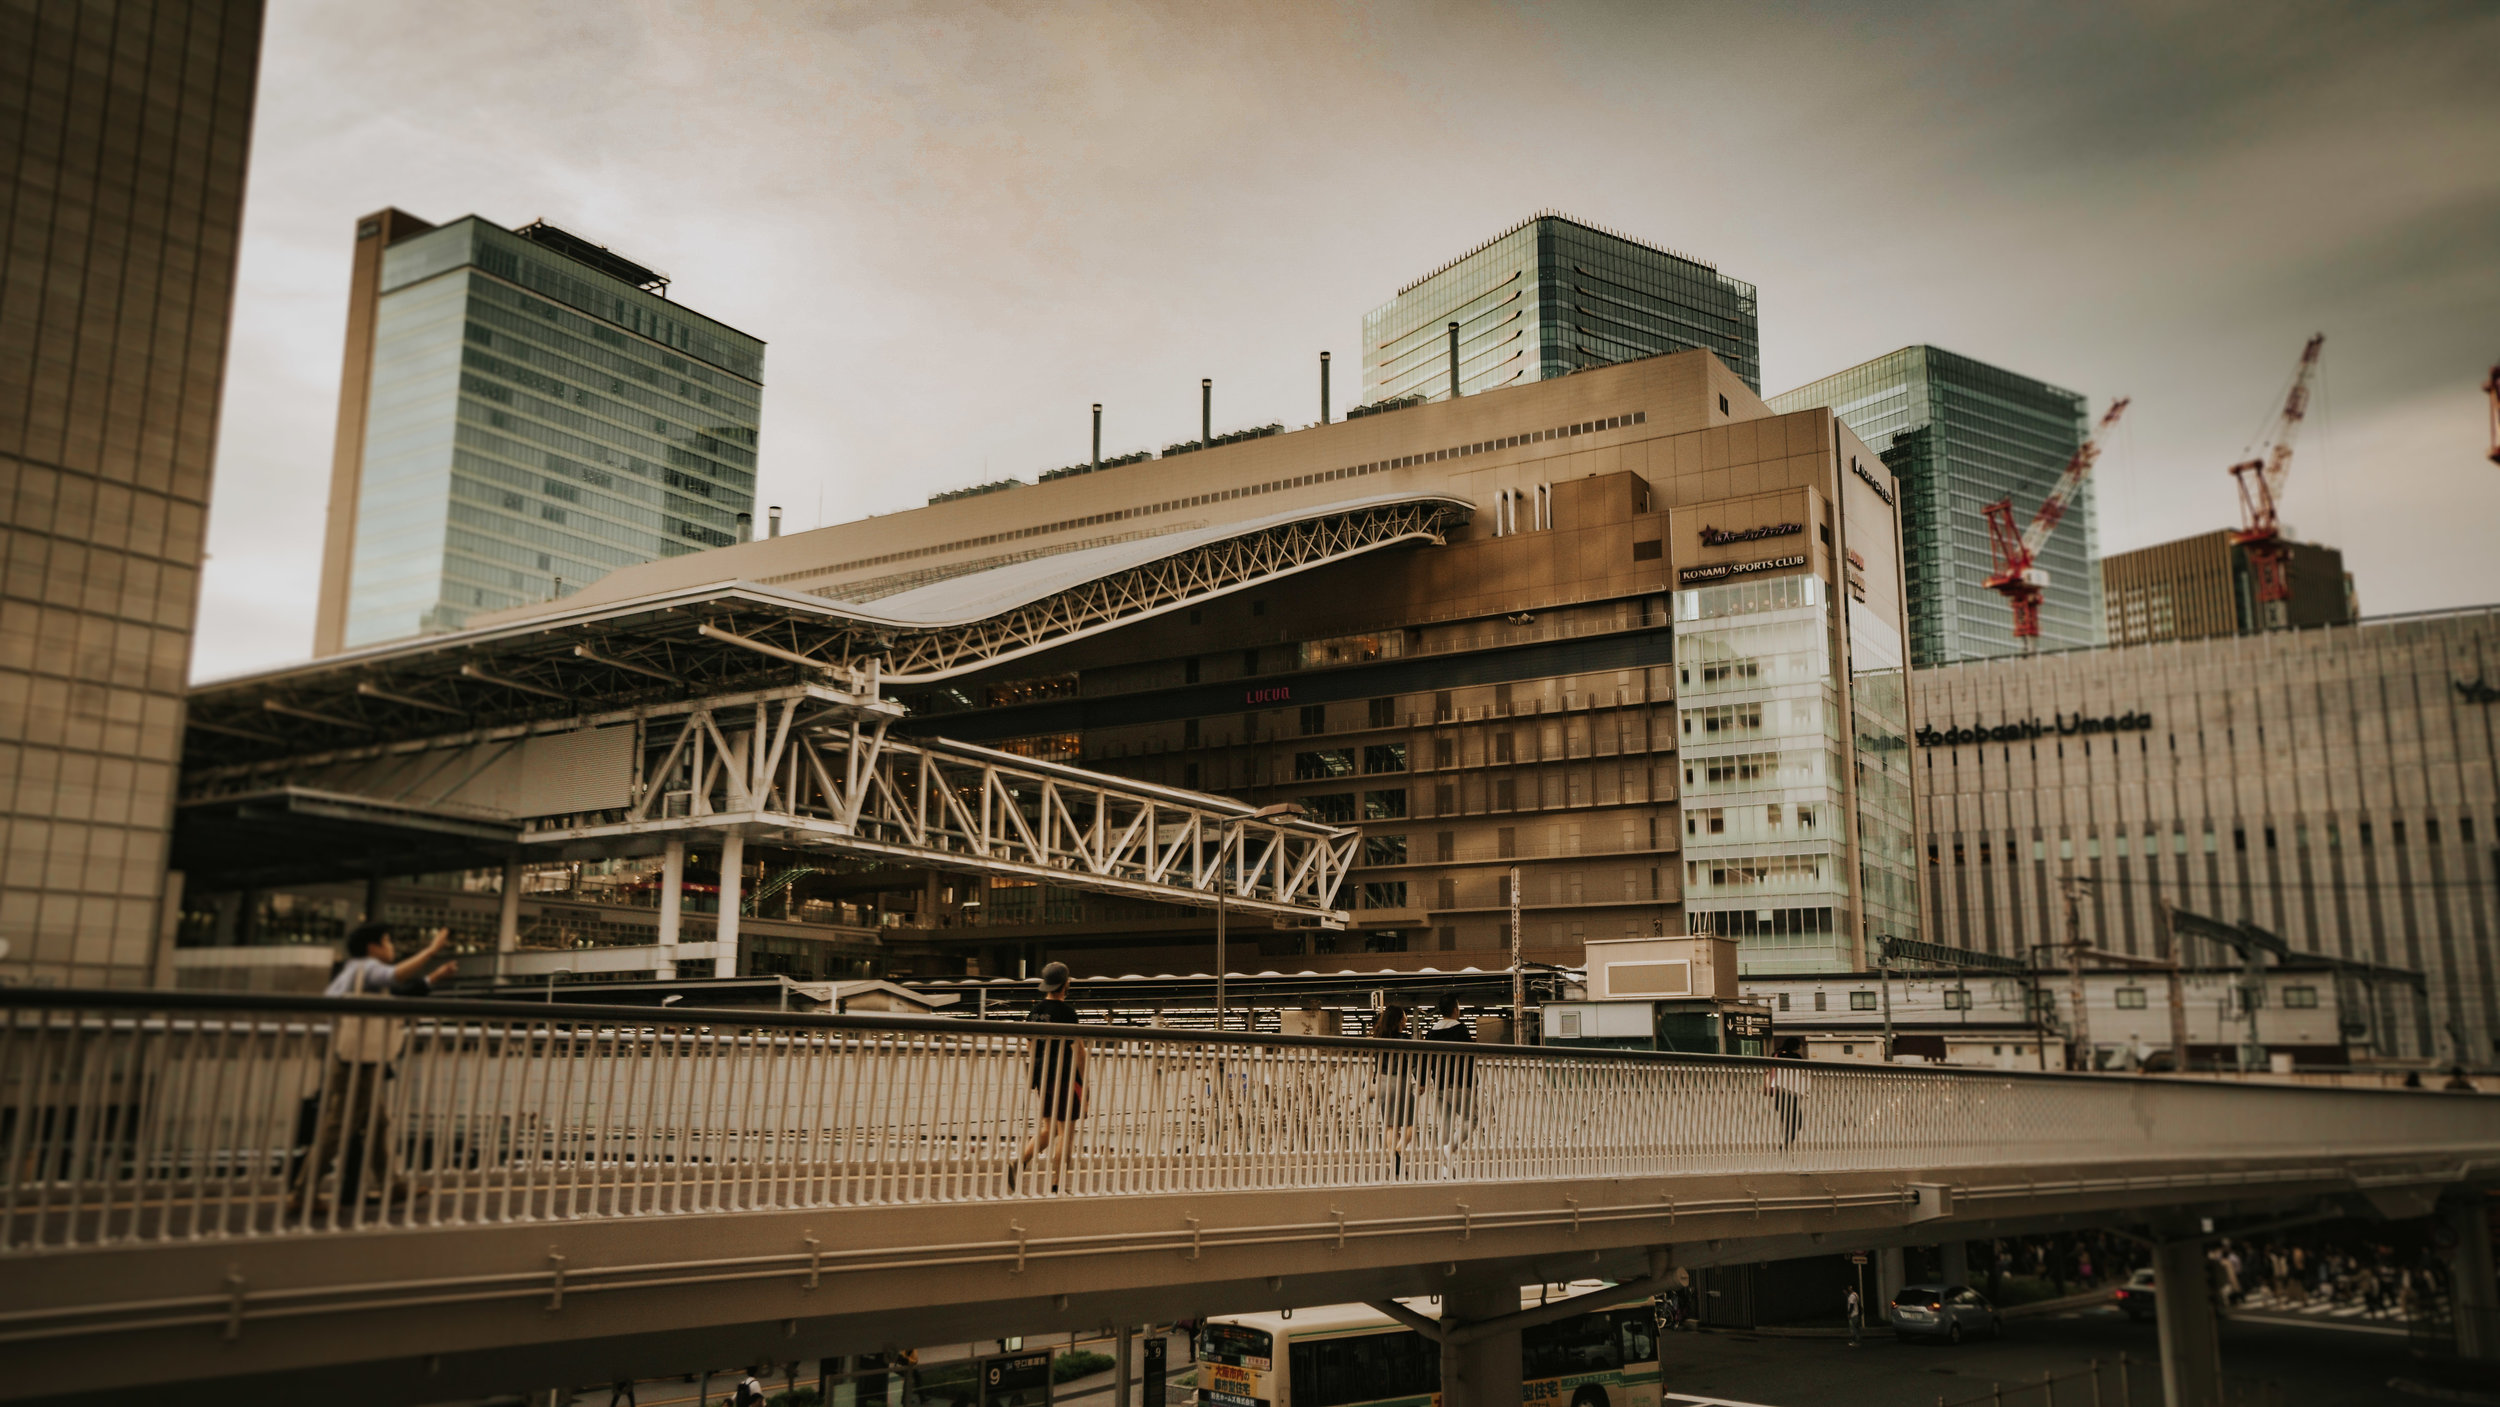 The Osaka train station is  enormous!